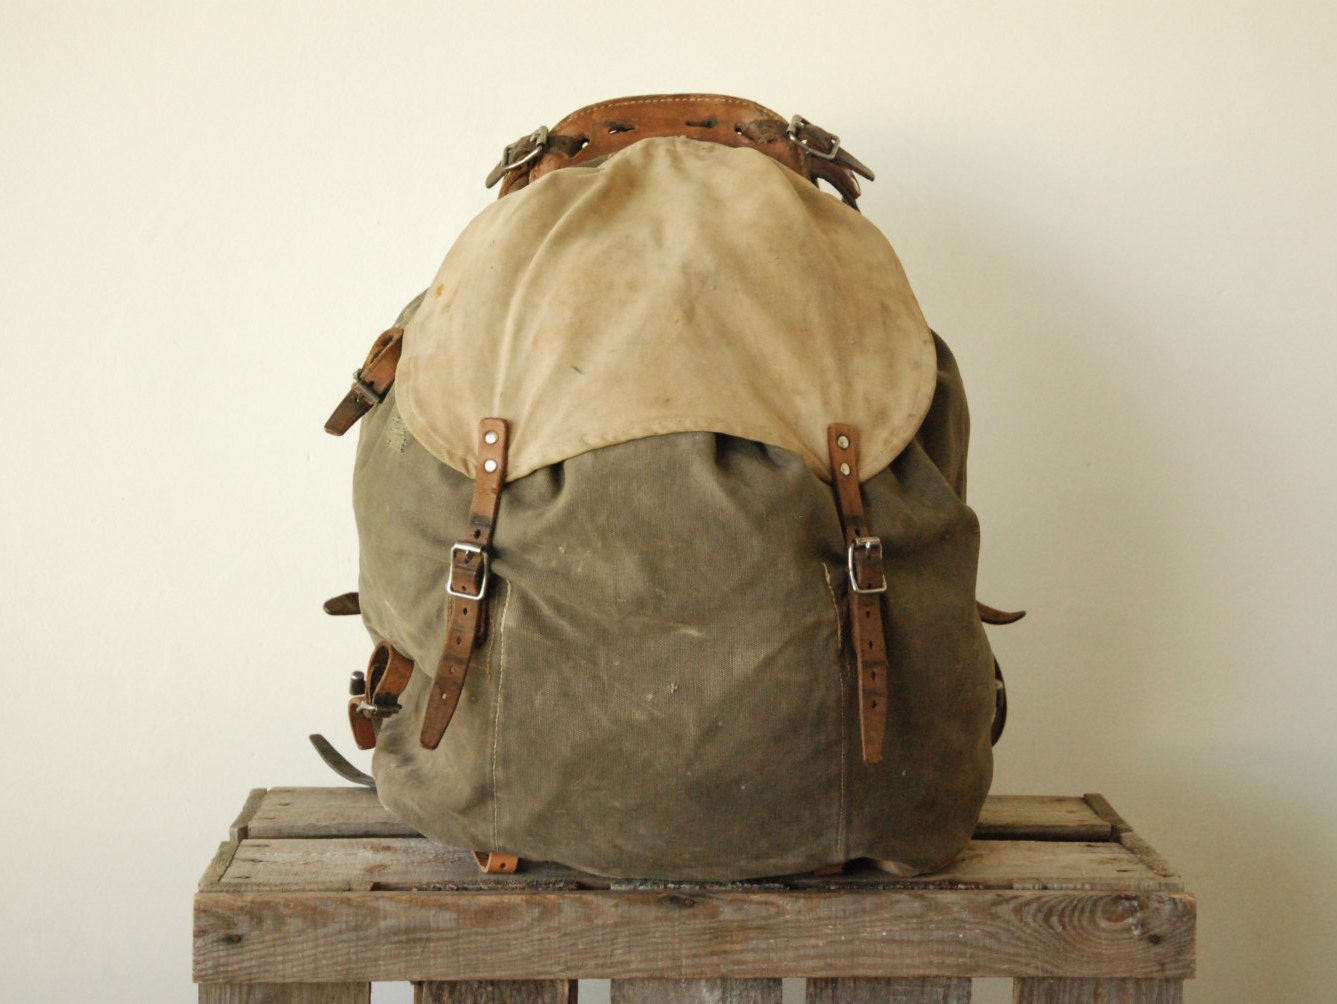 Plus Free Farmer Knife Swedish Army Backpack Rucksack